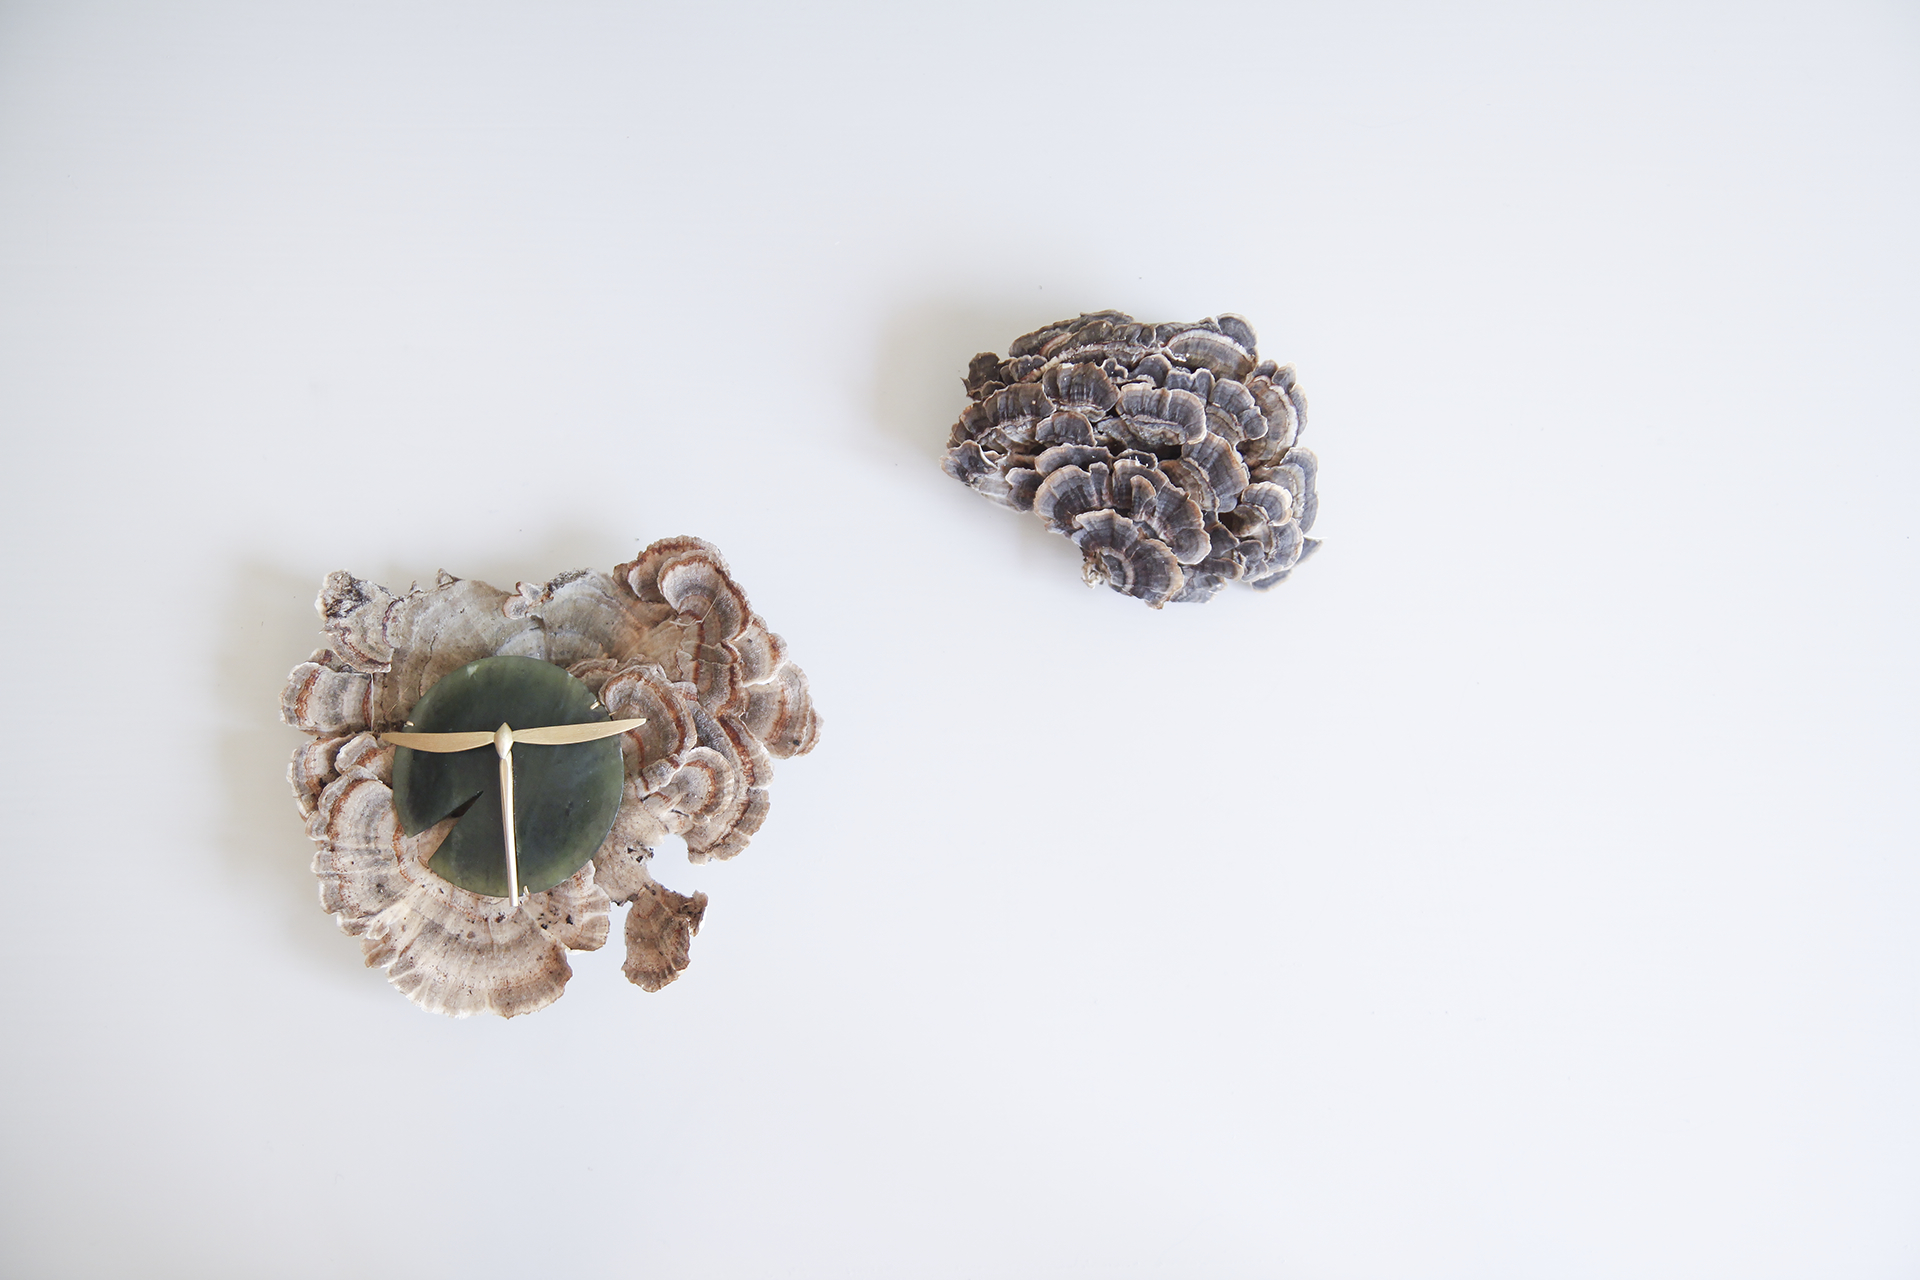 Jade Lilypad Brooch with 18ky Gold Dragonfly